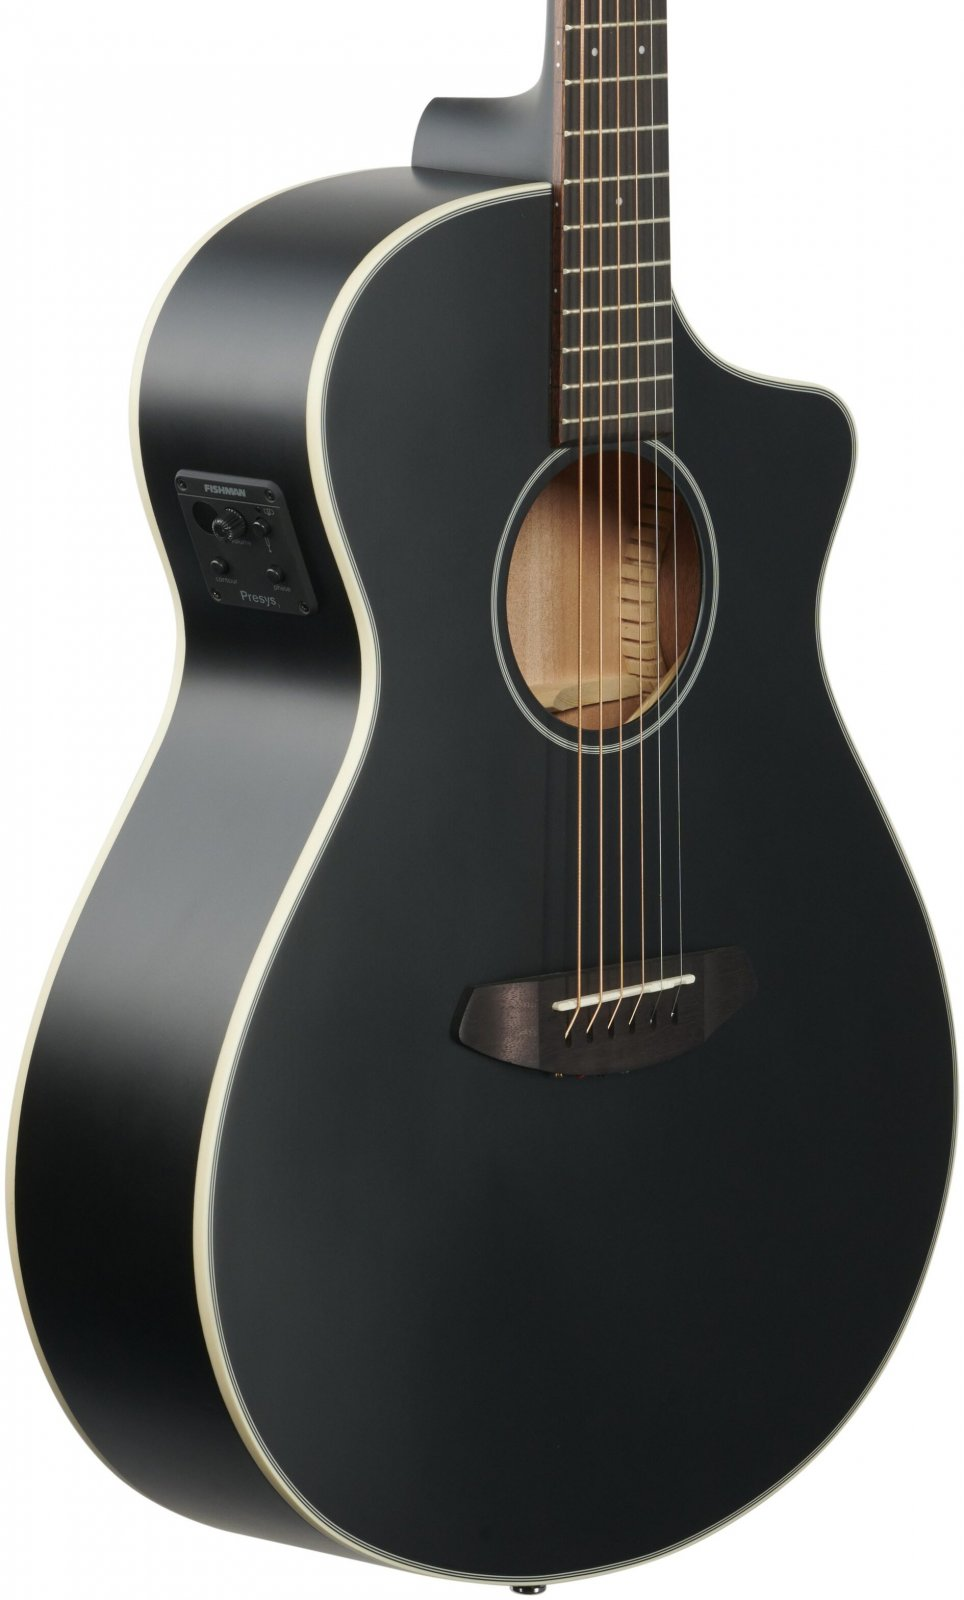 Breedlove Discovery Concert CE Satin Black Acoustic - Electric Guitar